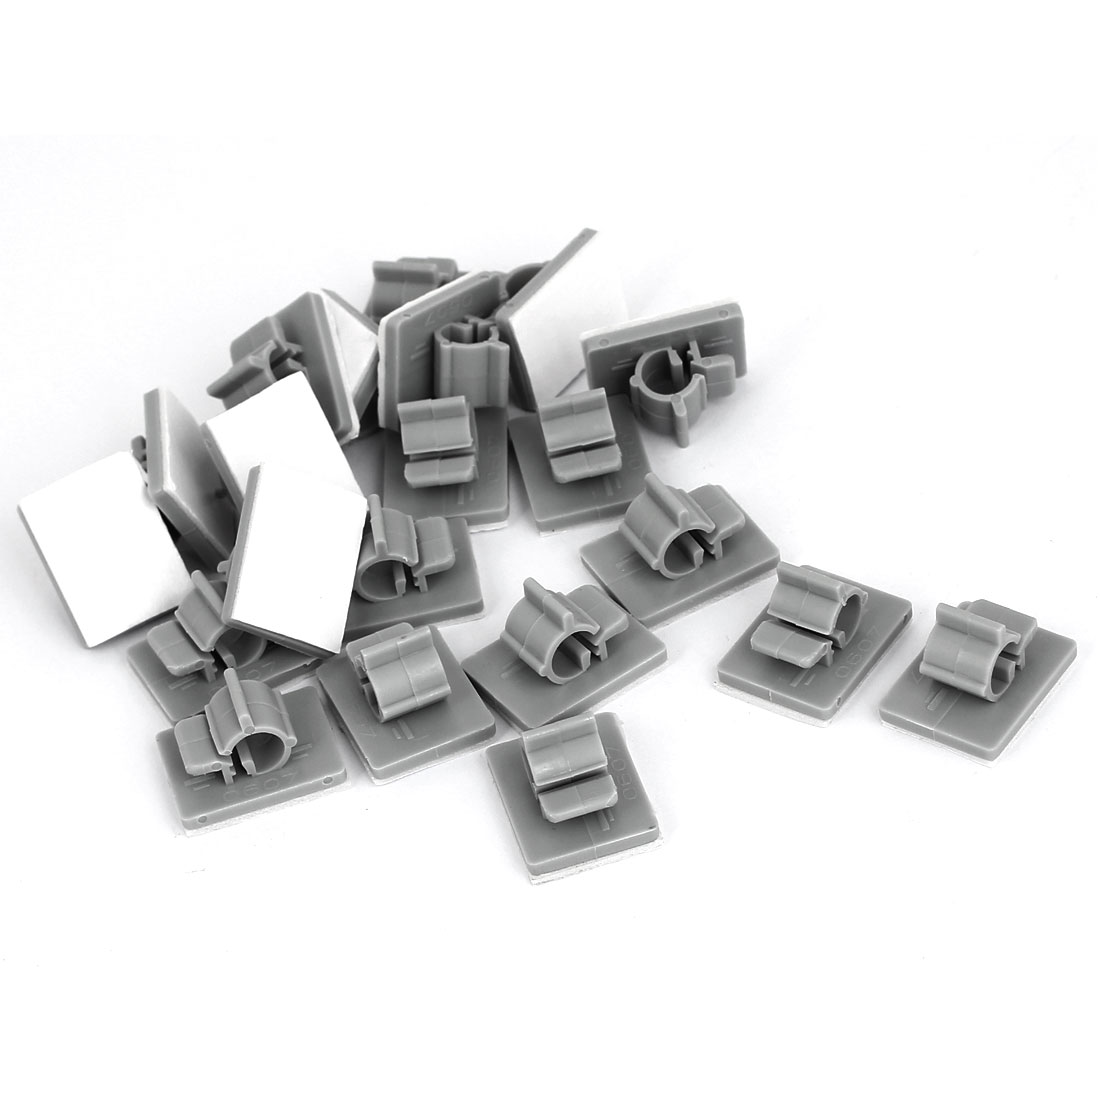 21pcs 6mm-7mm Cable Wire Holder Plastic Adhesive Clips Clamps Organizer Gray